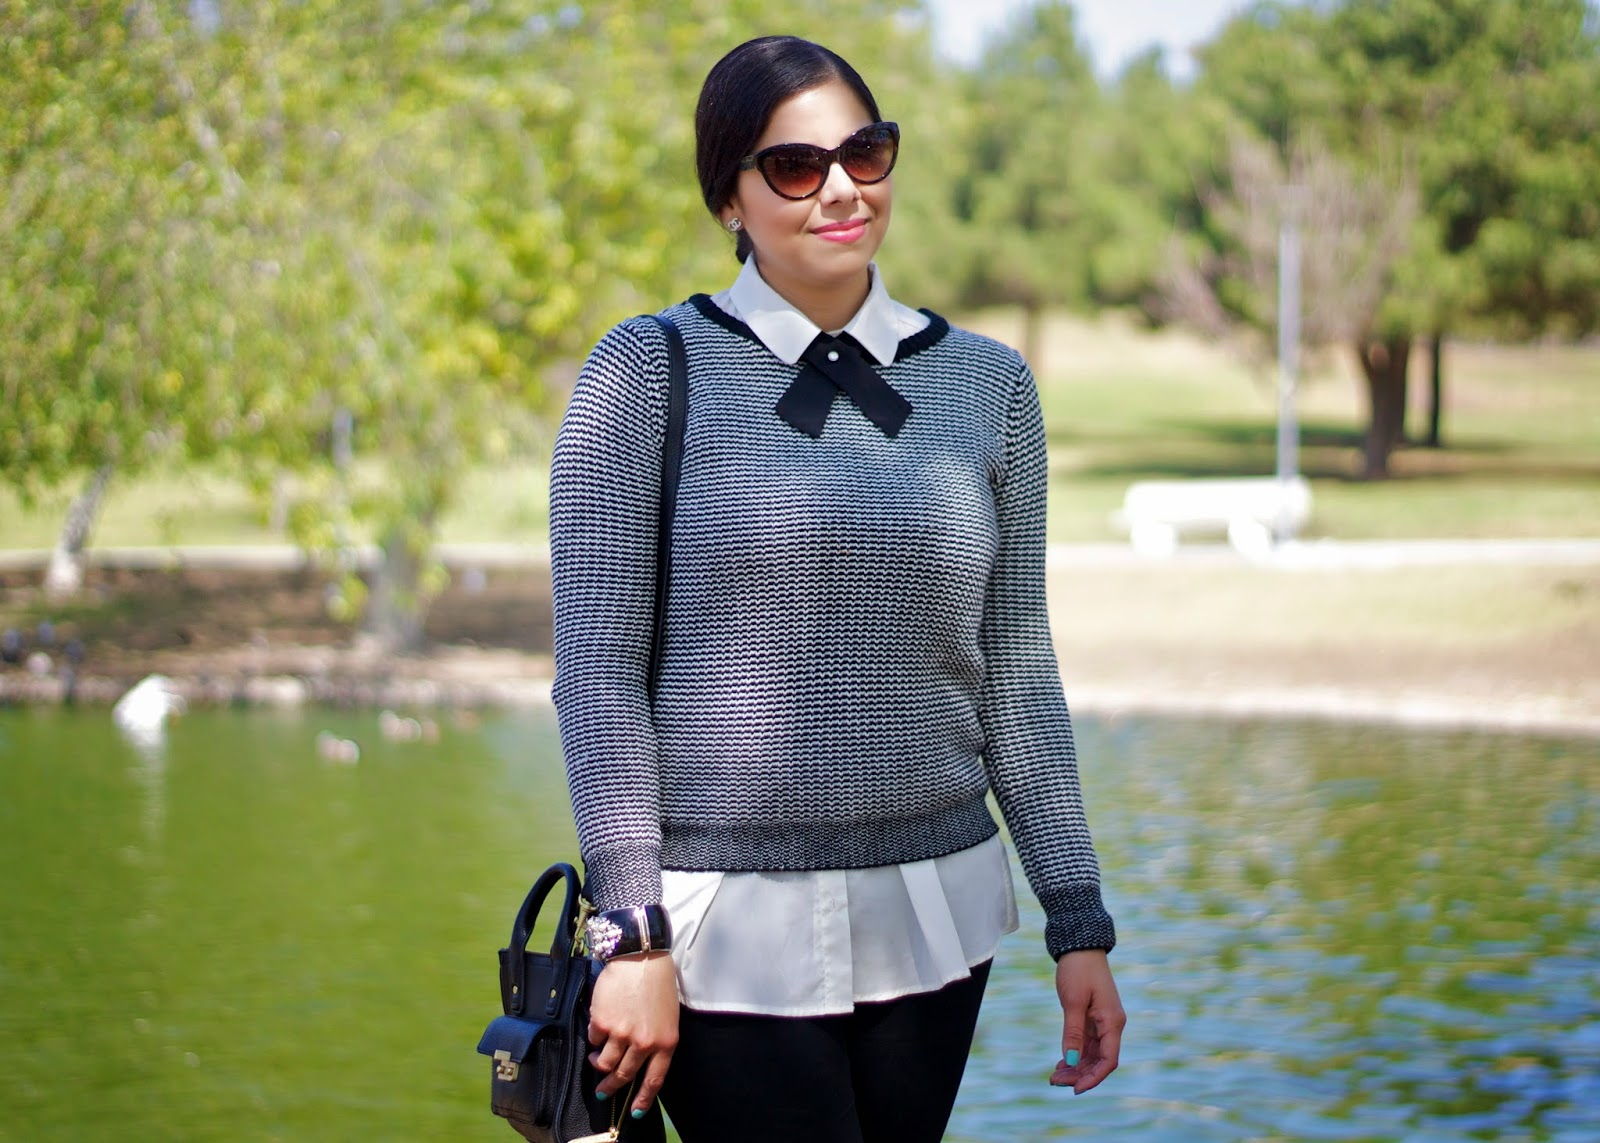 Black and White Sweater Outfit, Black and White Sweater Outfit by lilbitsofchic, Black and White Sweater Outfit San Diego